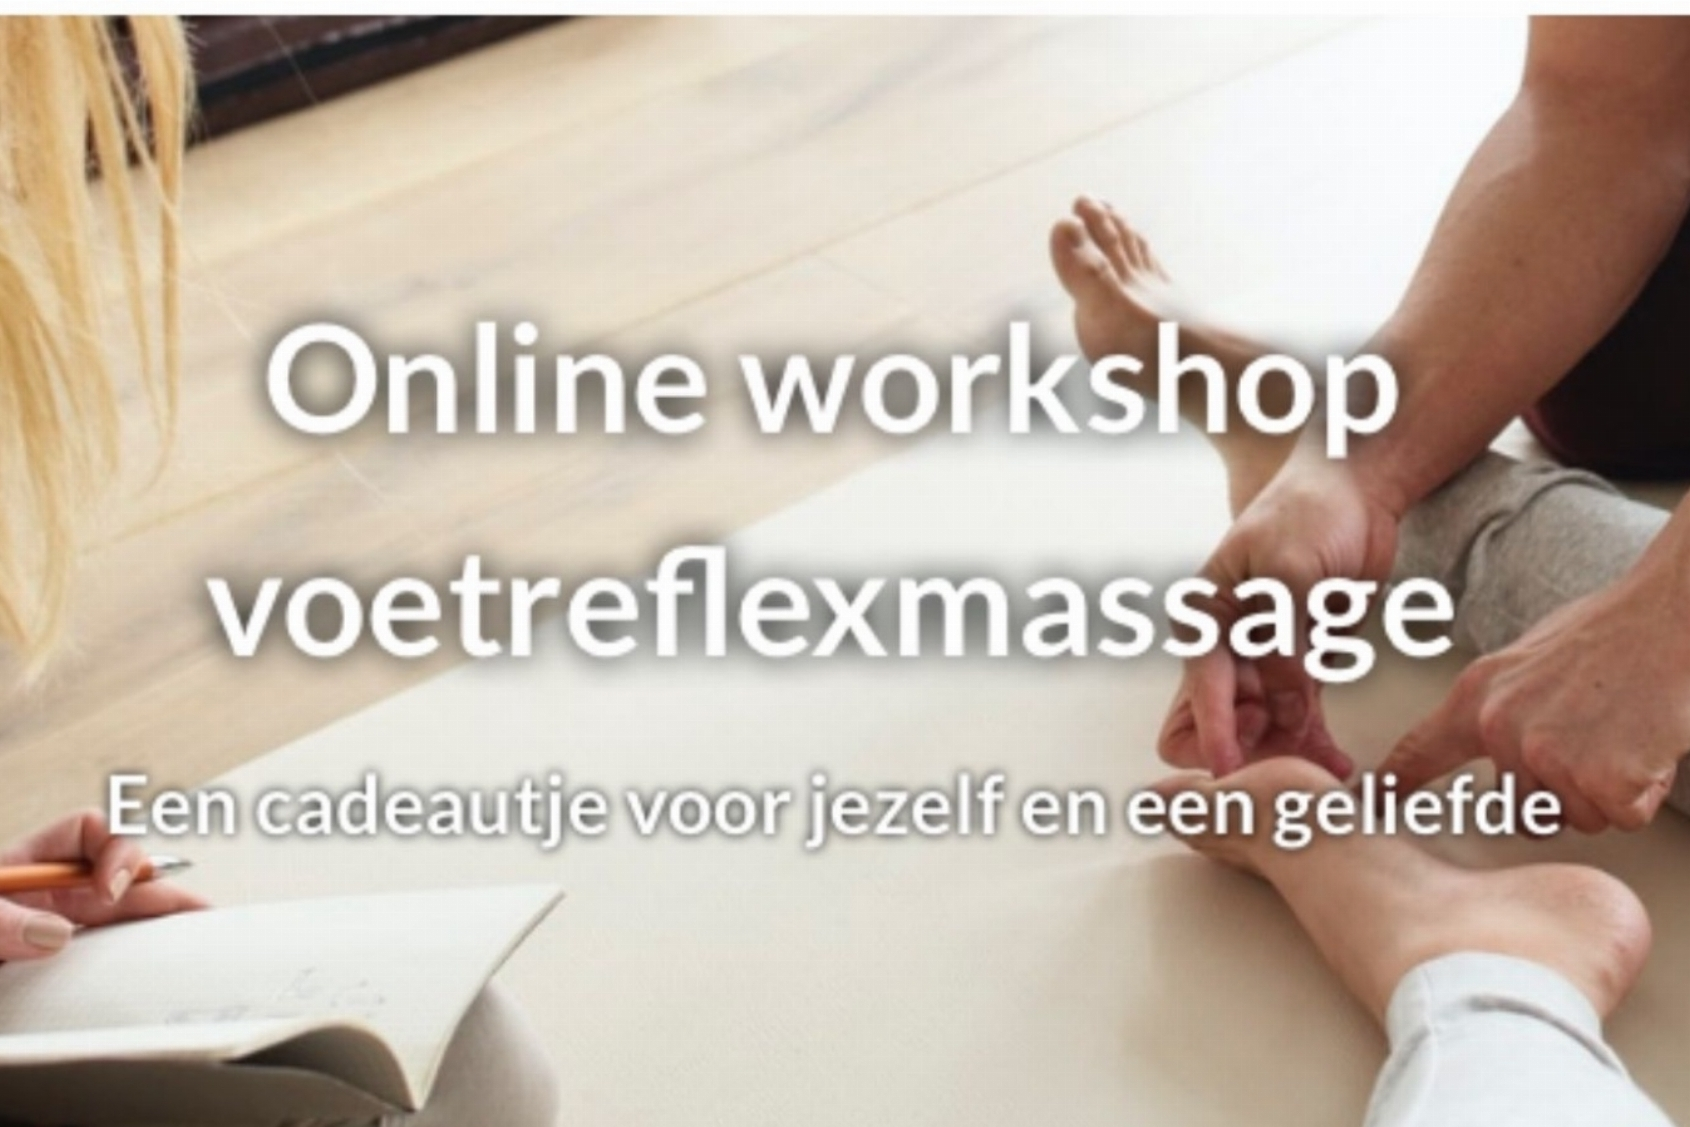 Online workshop voetreflexmassage